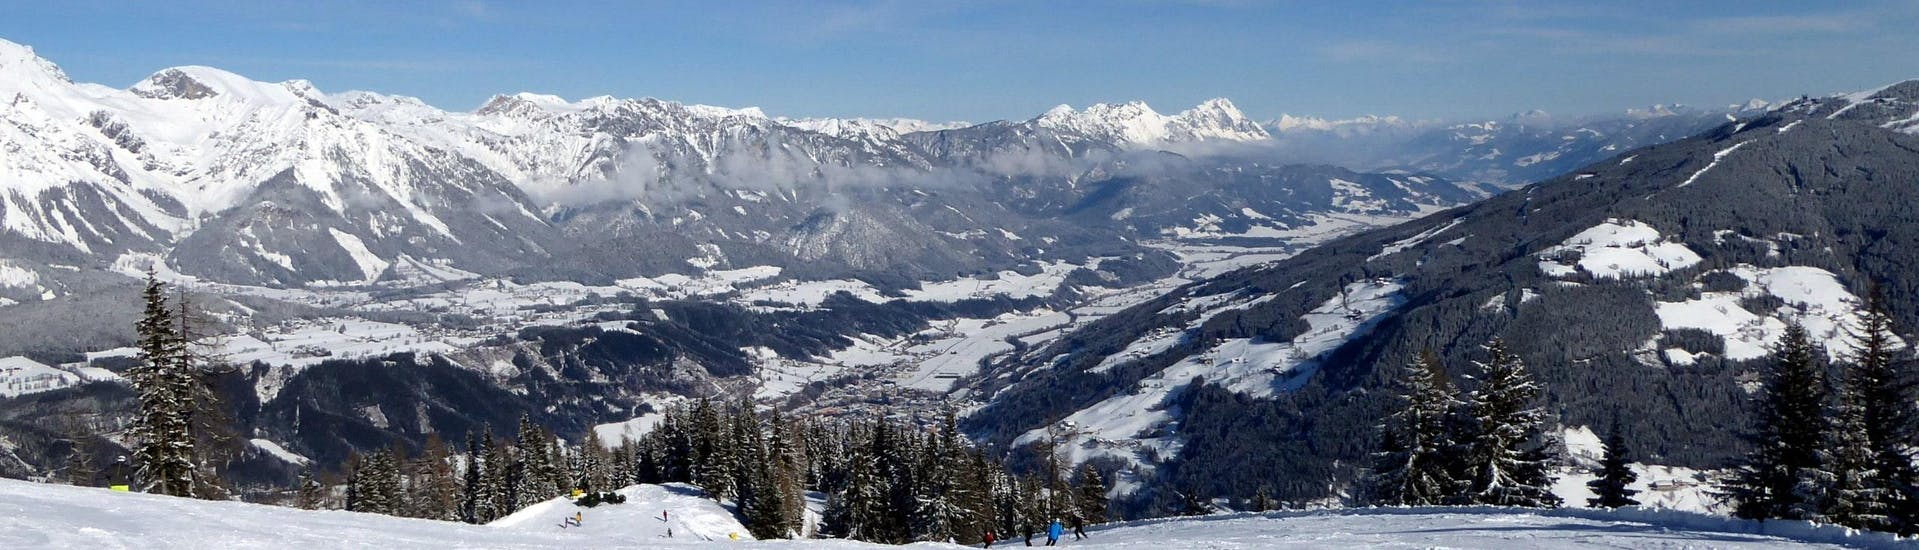 View over the sunny mountain landscape while learning to ski with the ski schools in Rohrmoos - Hochwurzen.